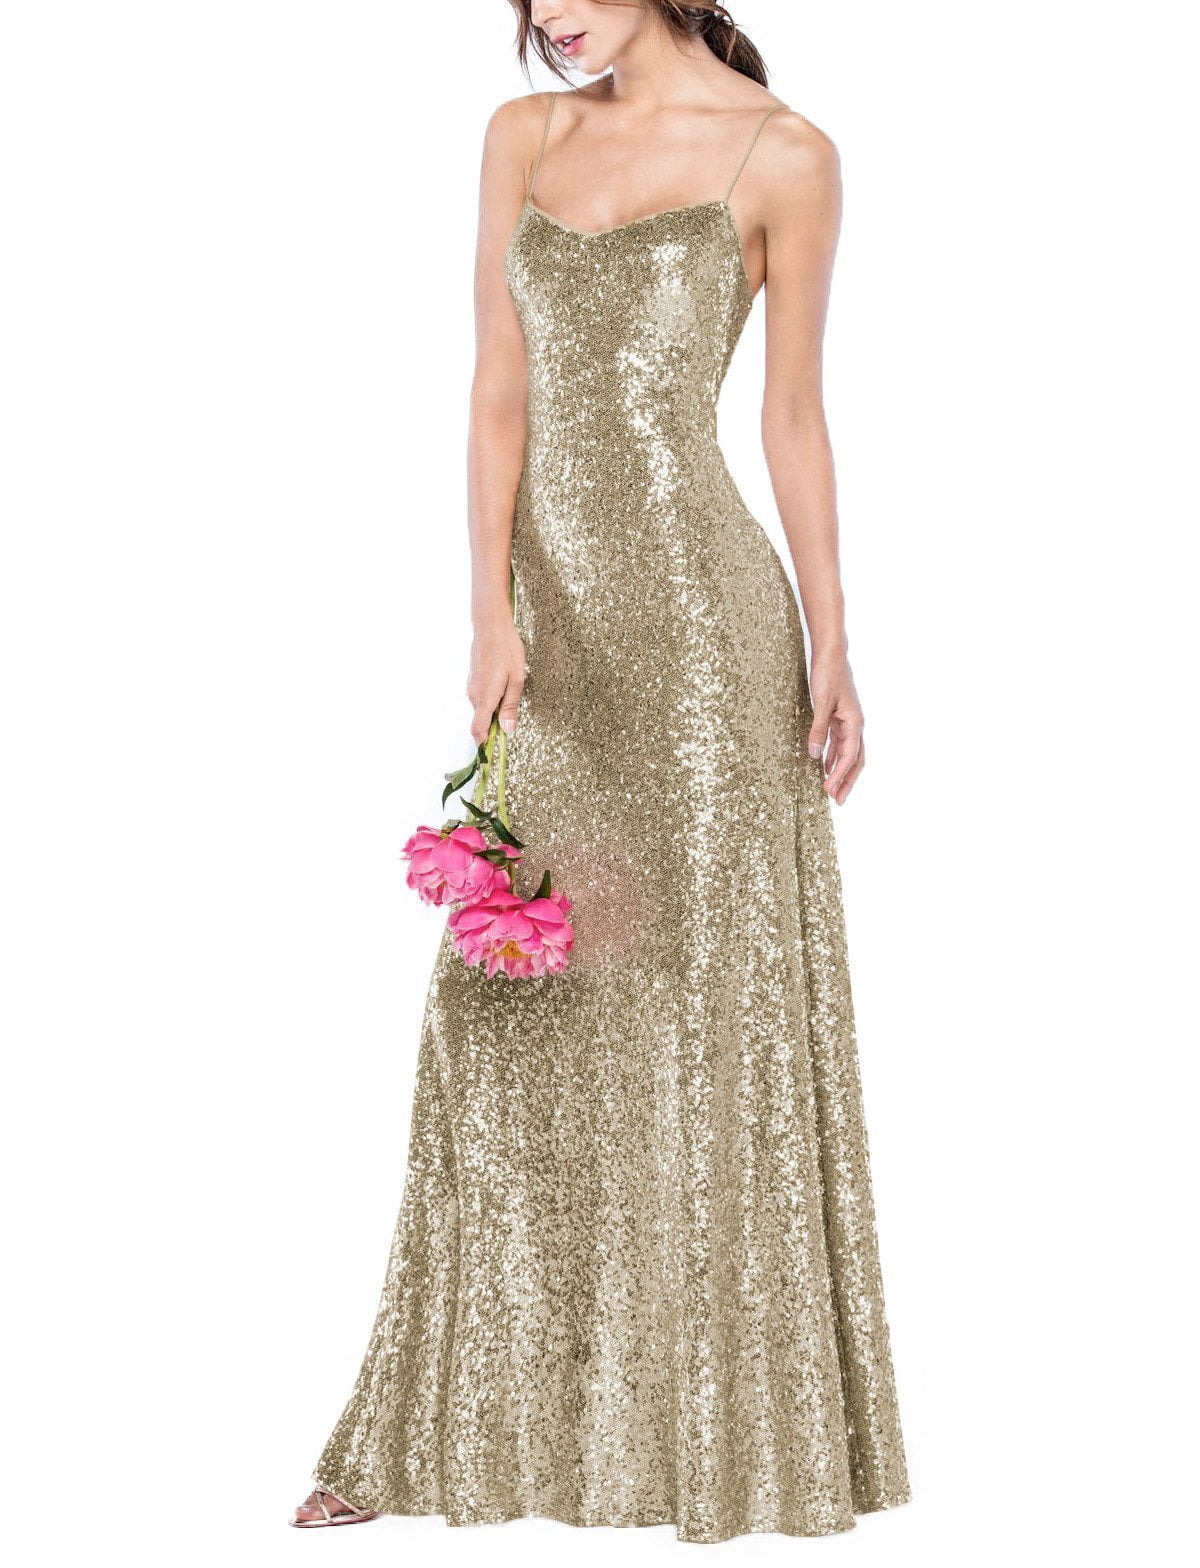 Watters Lucette in Soft Gold Sequin